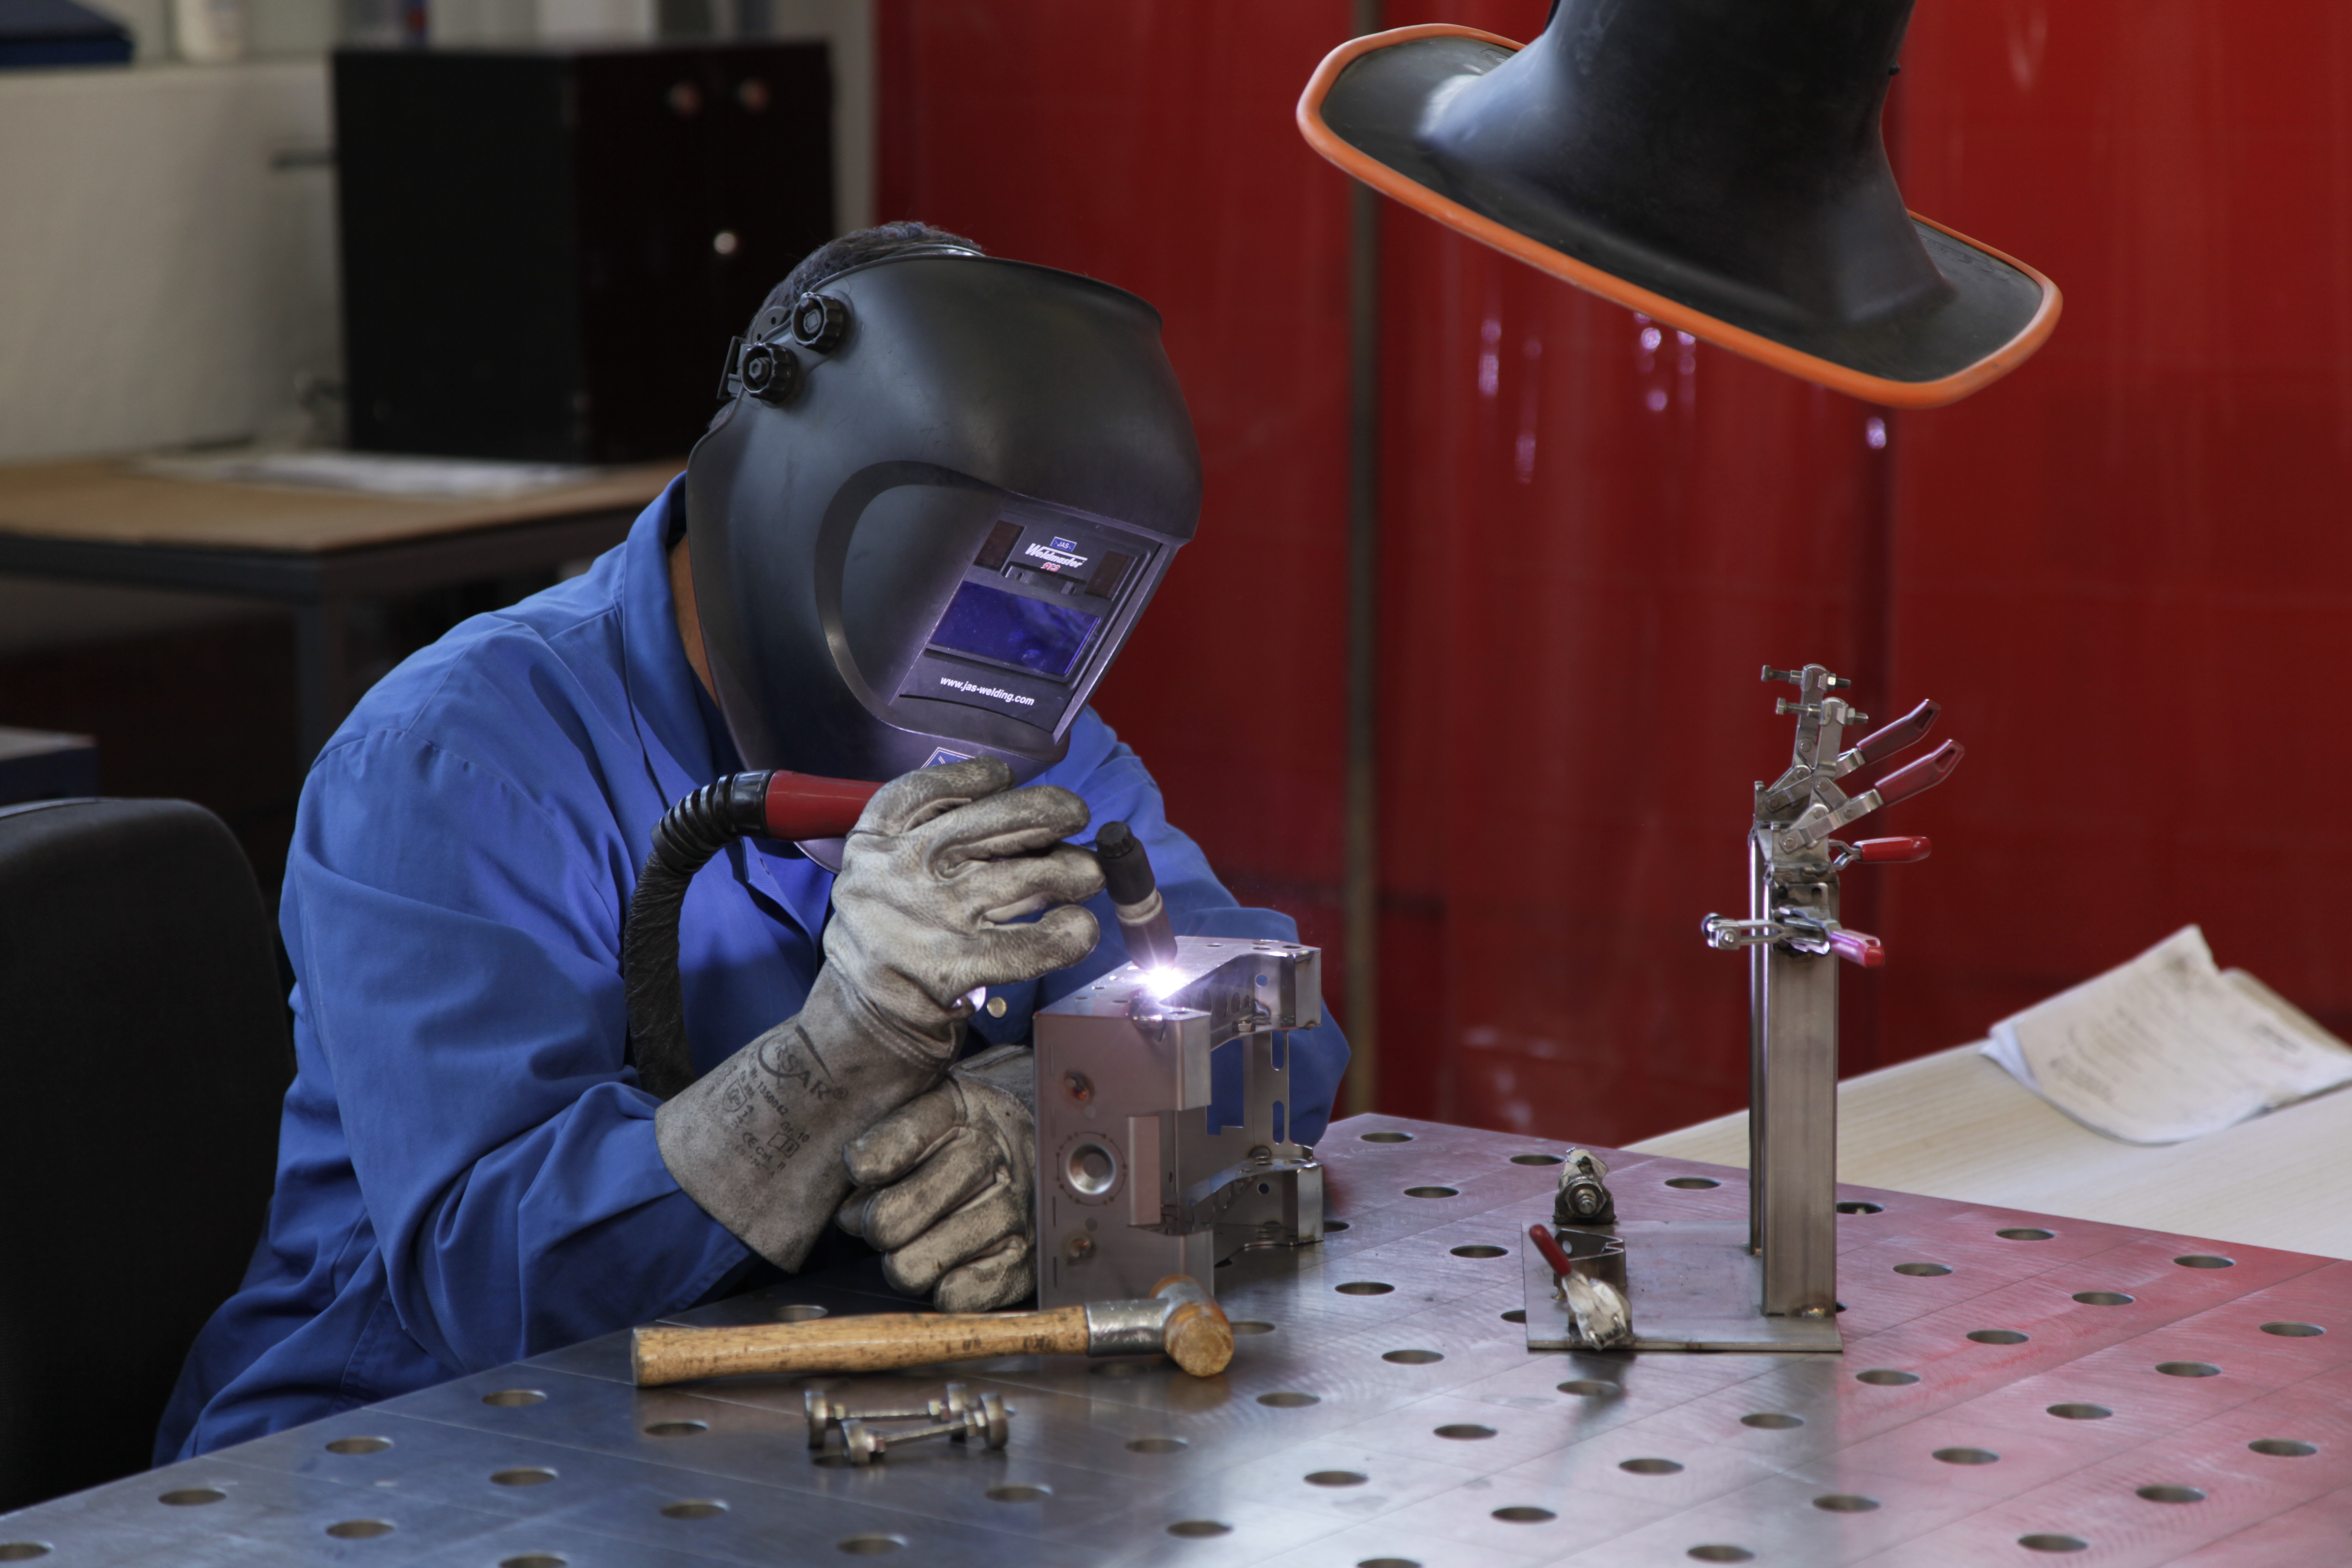 WIG welding: high health risk due to ozone and radiation